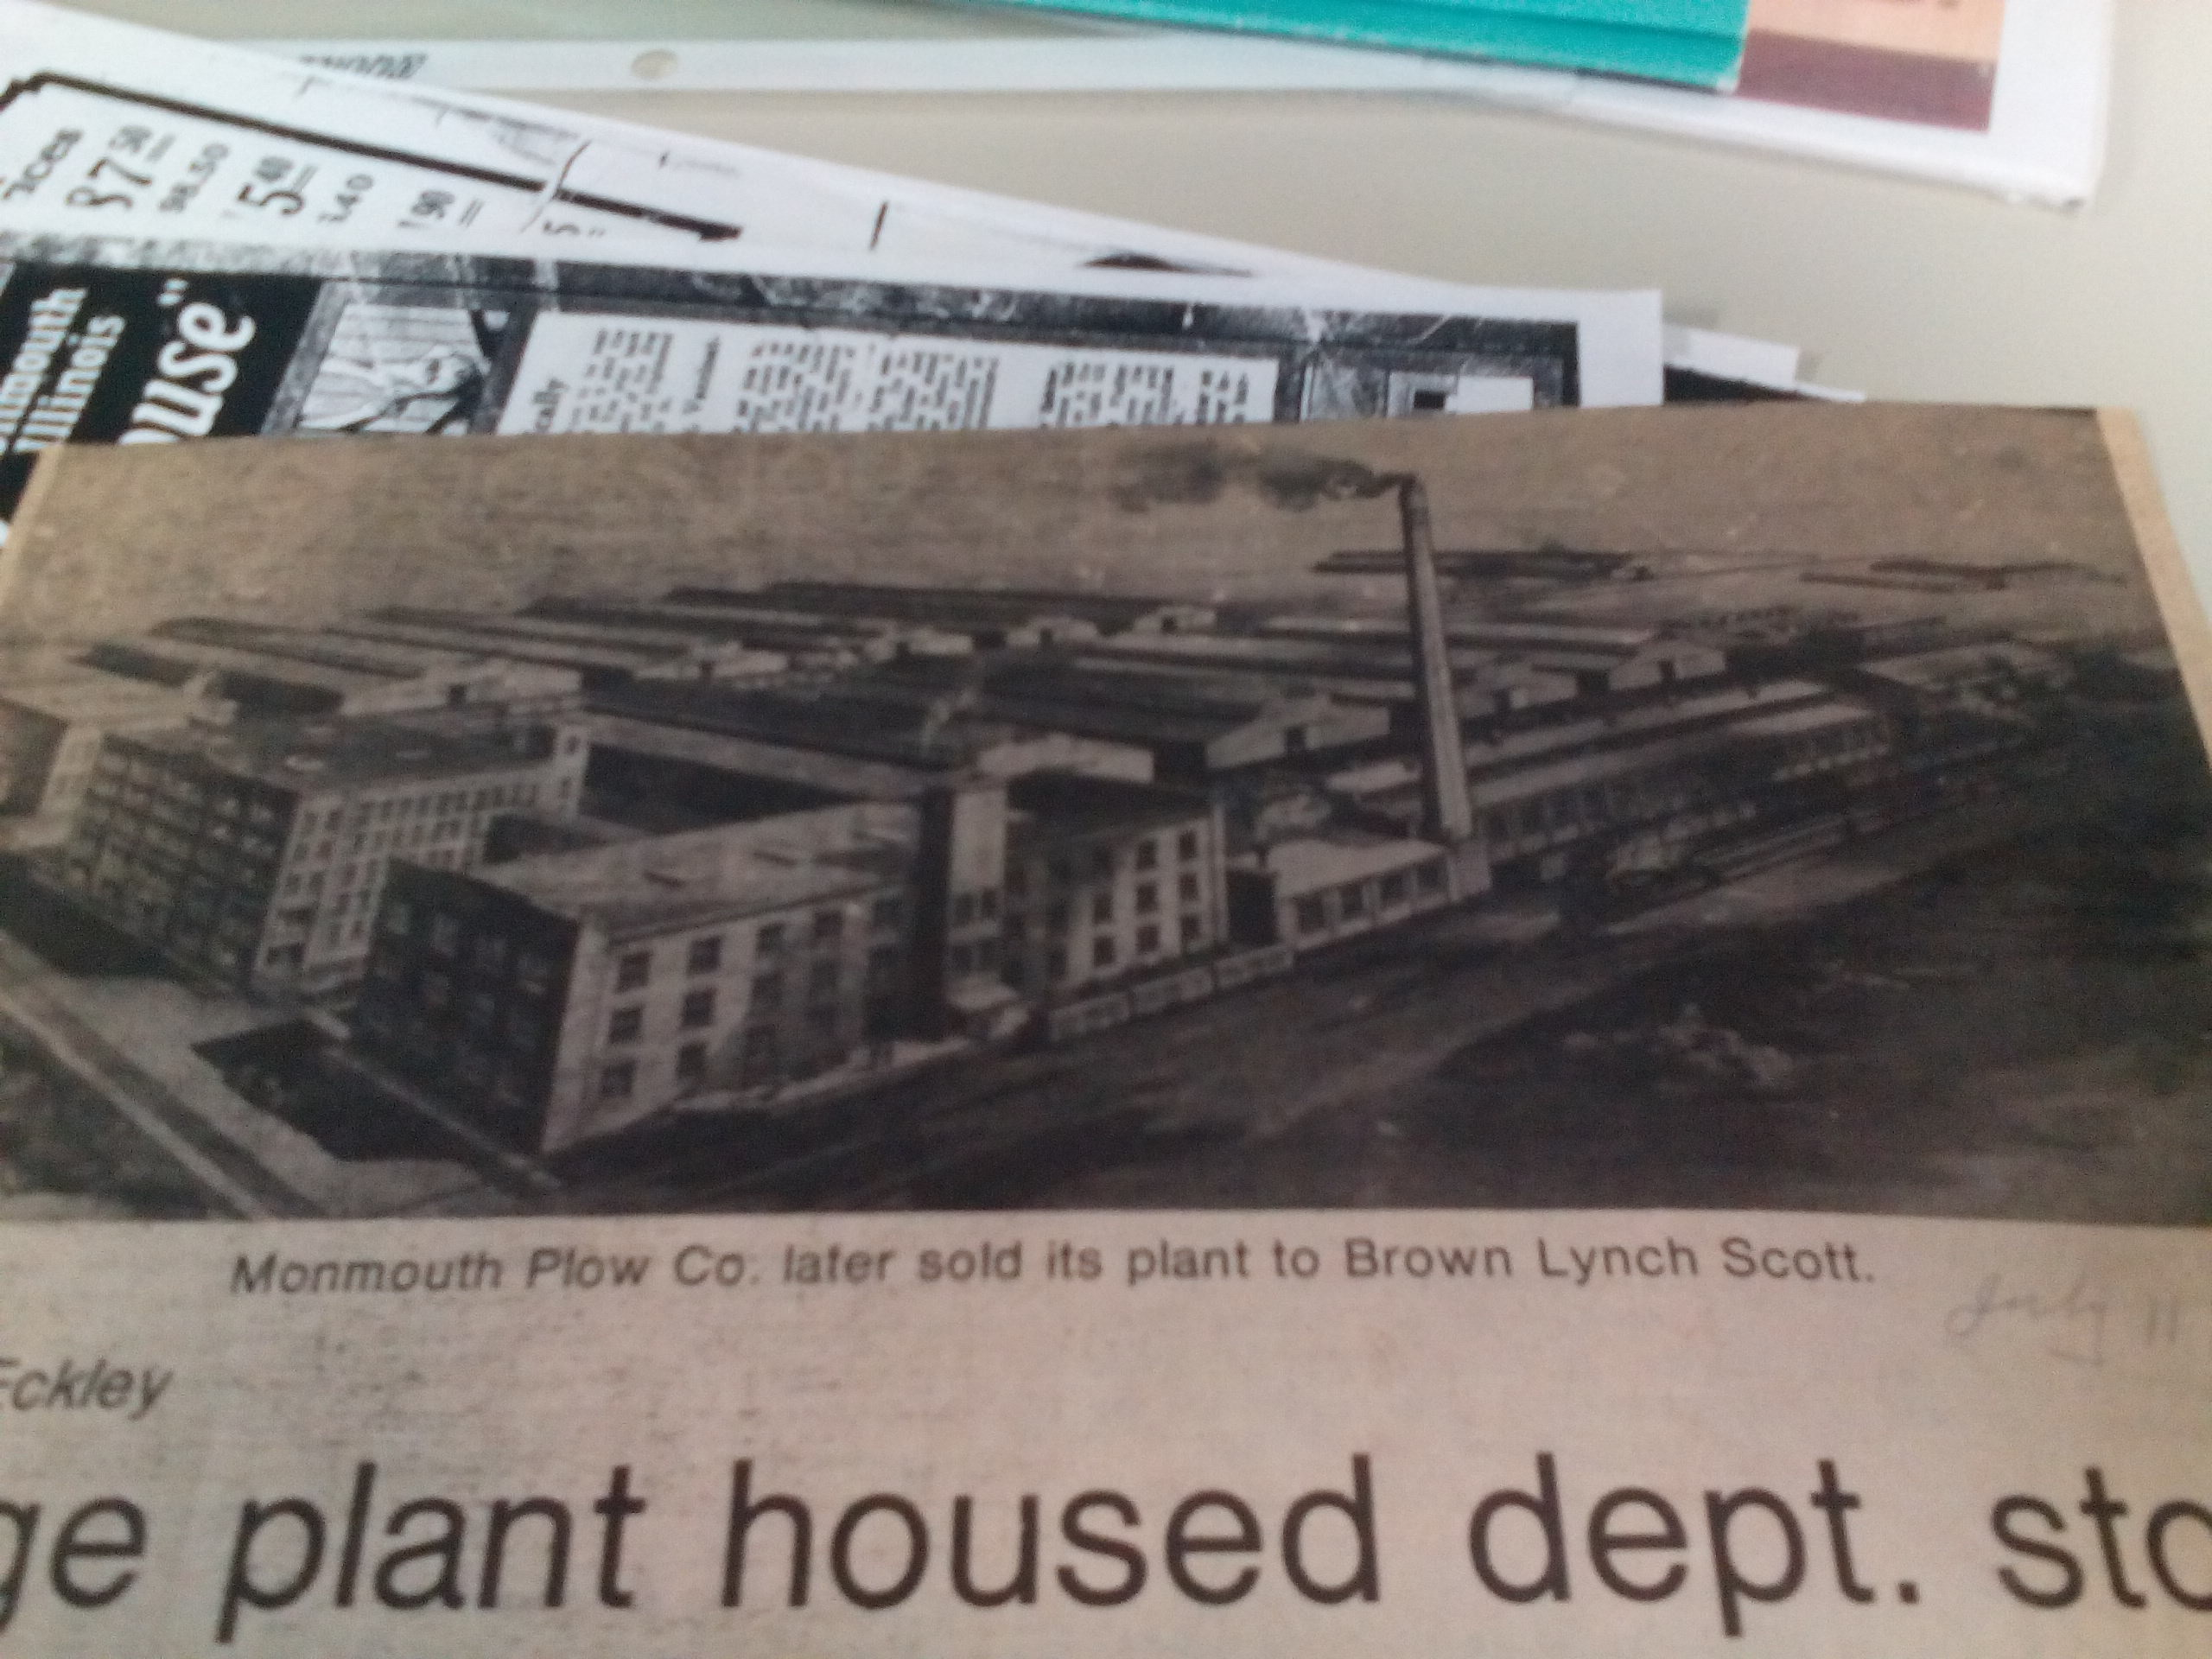 The Plow Company